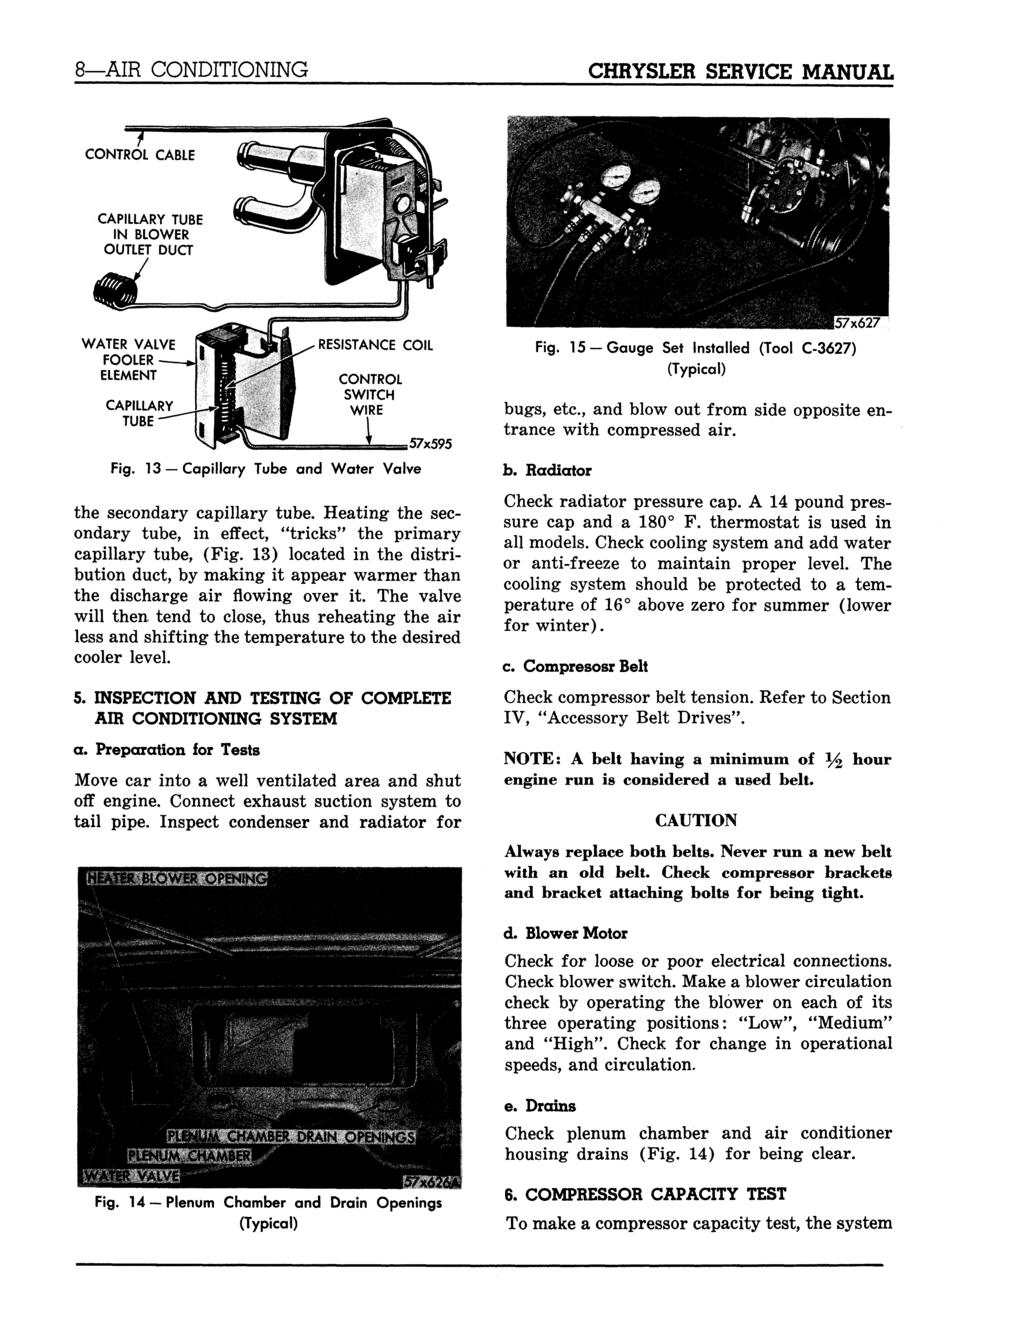 Chrysler Heater Air Conditioning System Pdf Detailed A C Compressor Bracketry Installation Diagram 8 Service Manual Capillary Tube In Blower Outlet Duct Water Valve Fooler